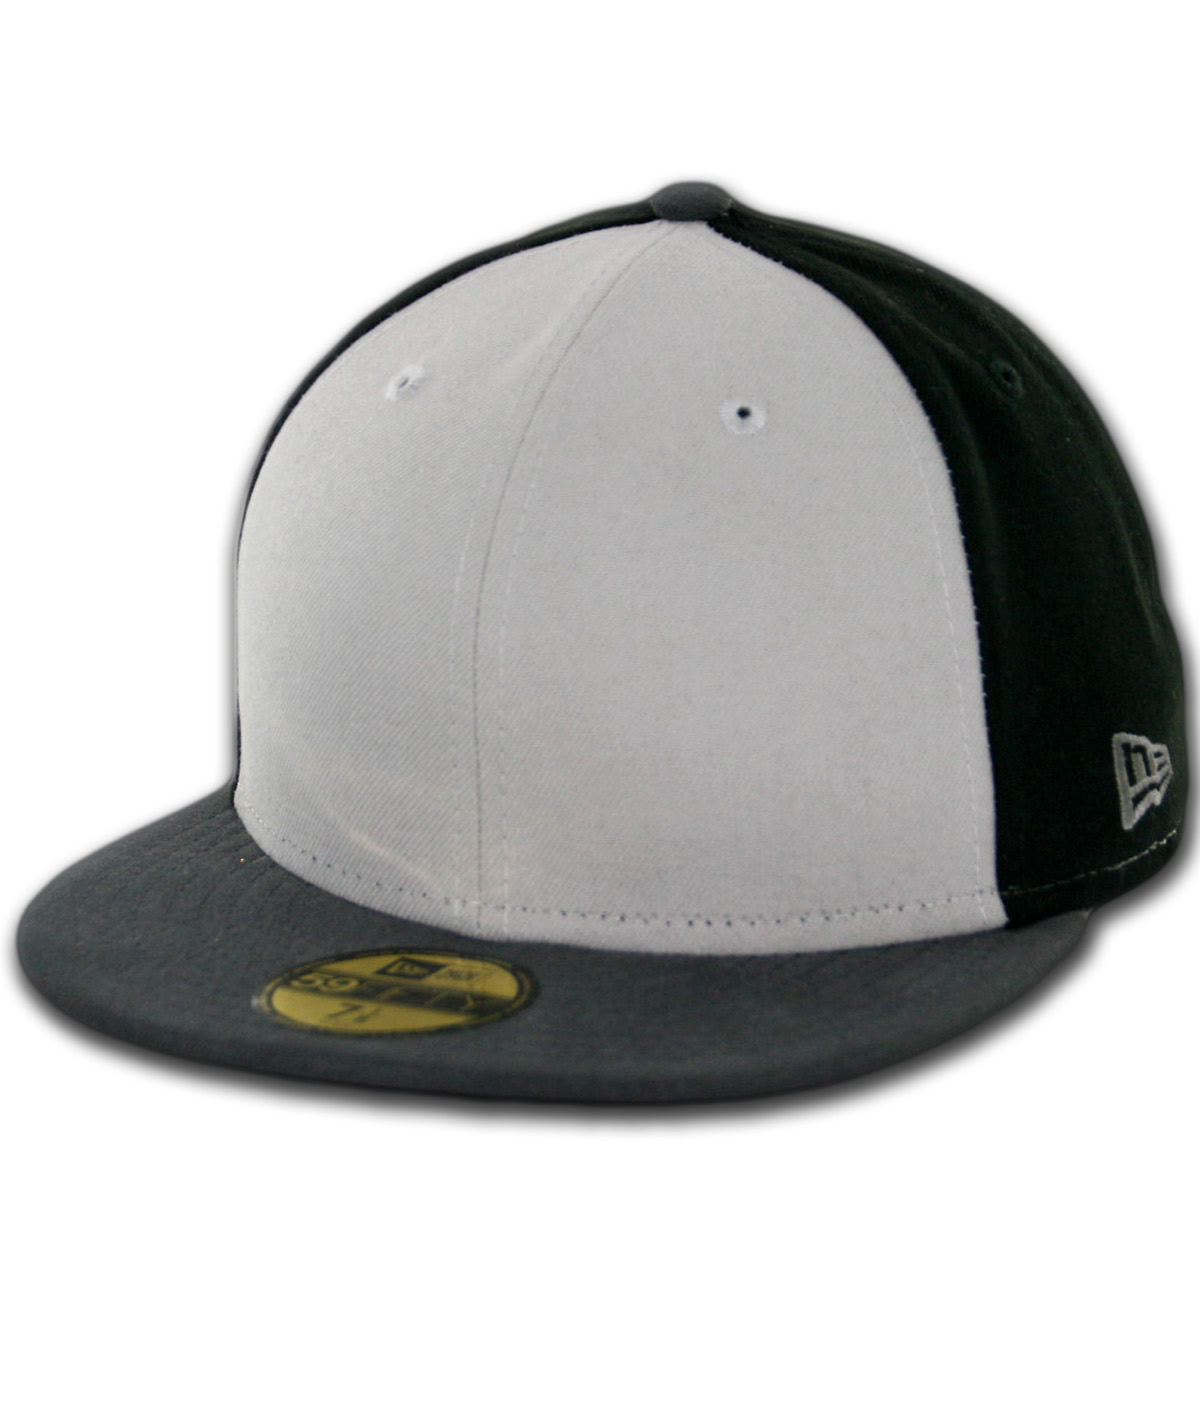 83c1fecd New Era Blanks 59FIFTY Plain Fitted Hat Tritone Black/Grey-Graphite ...